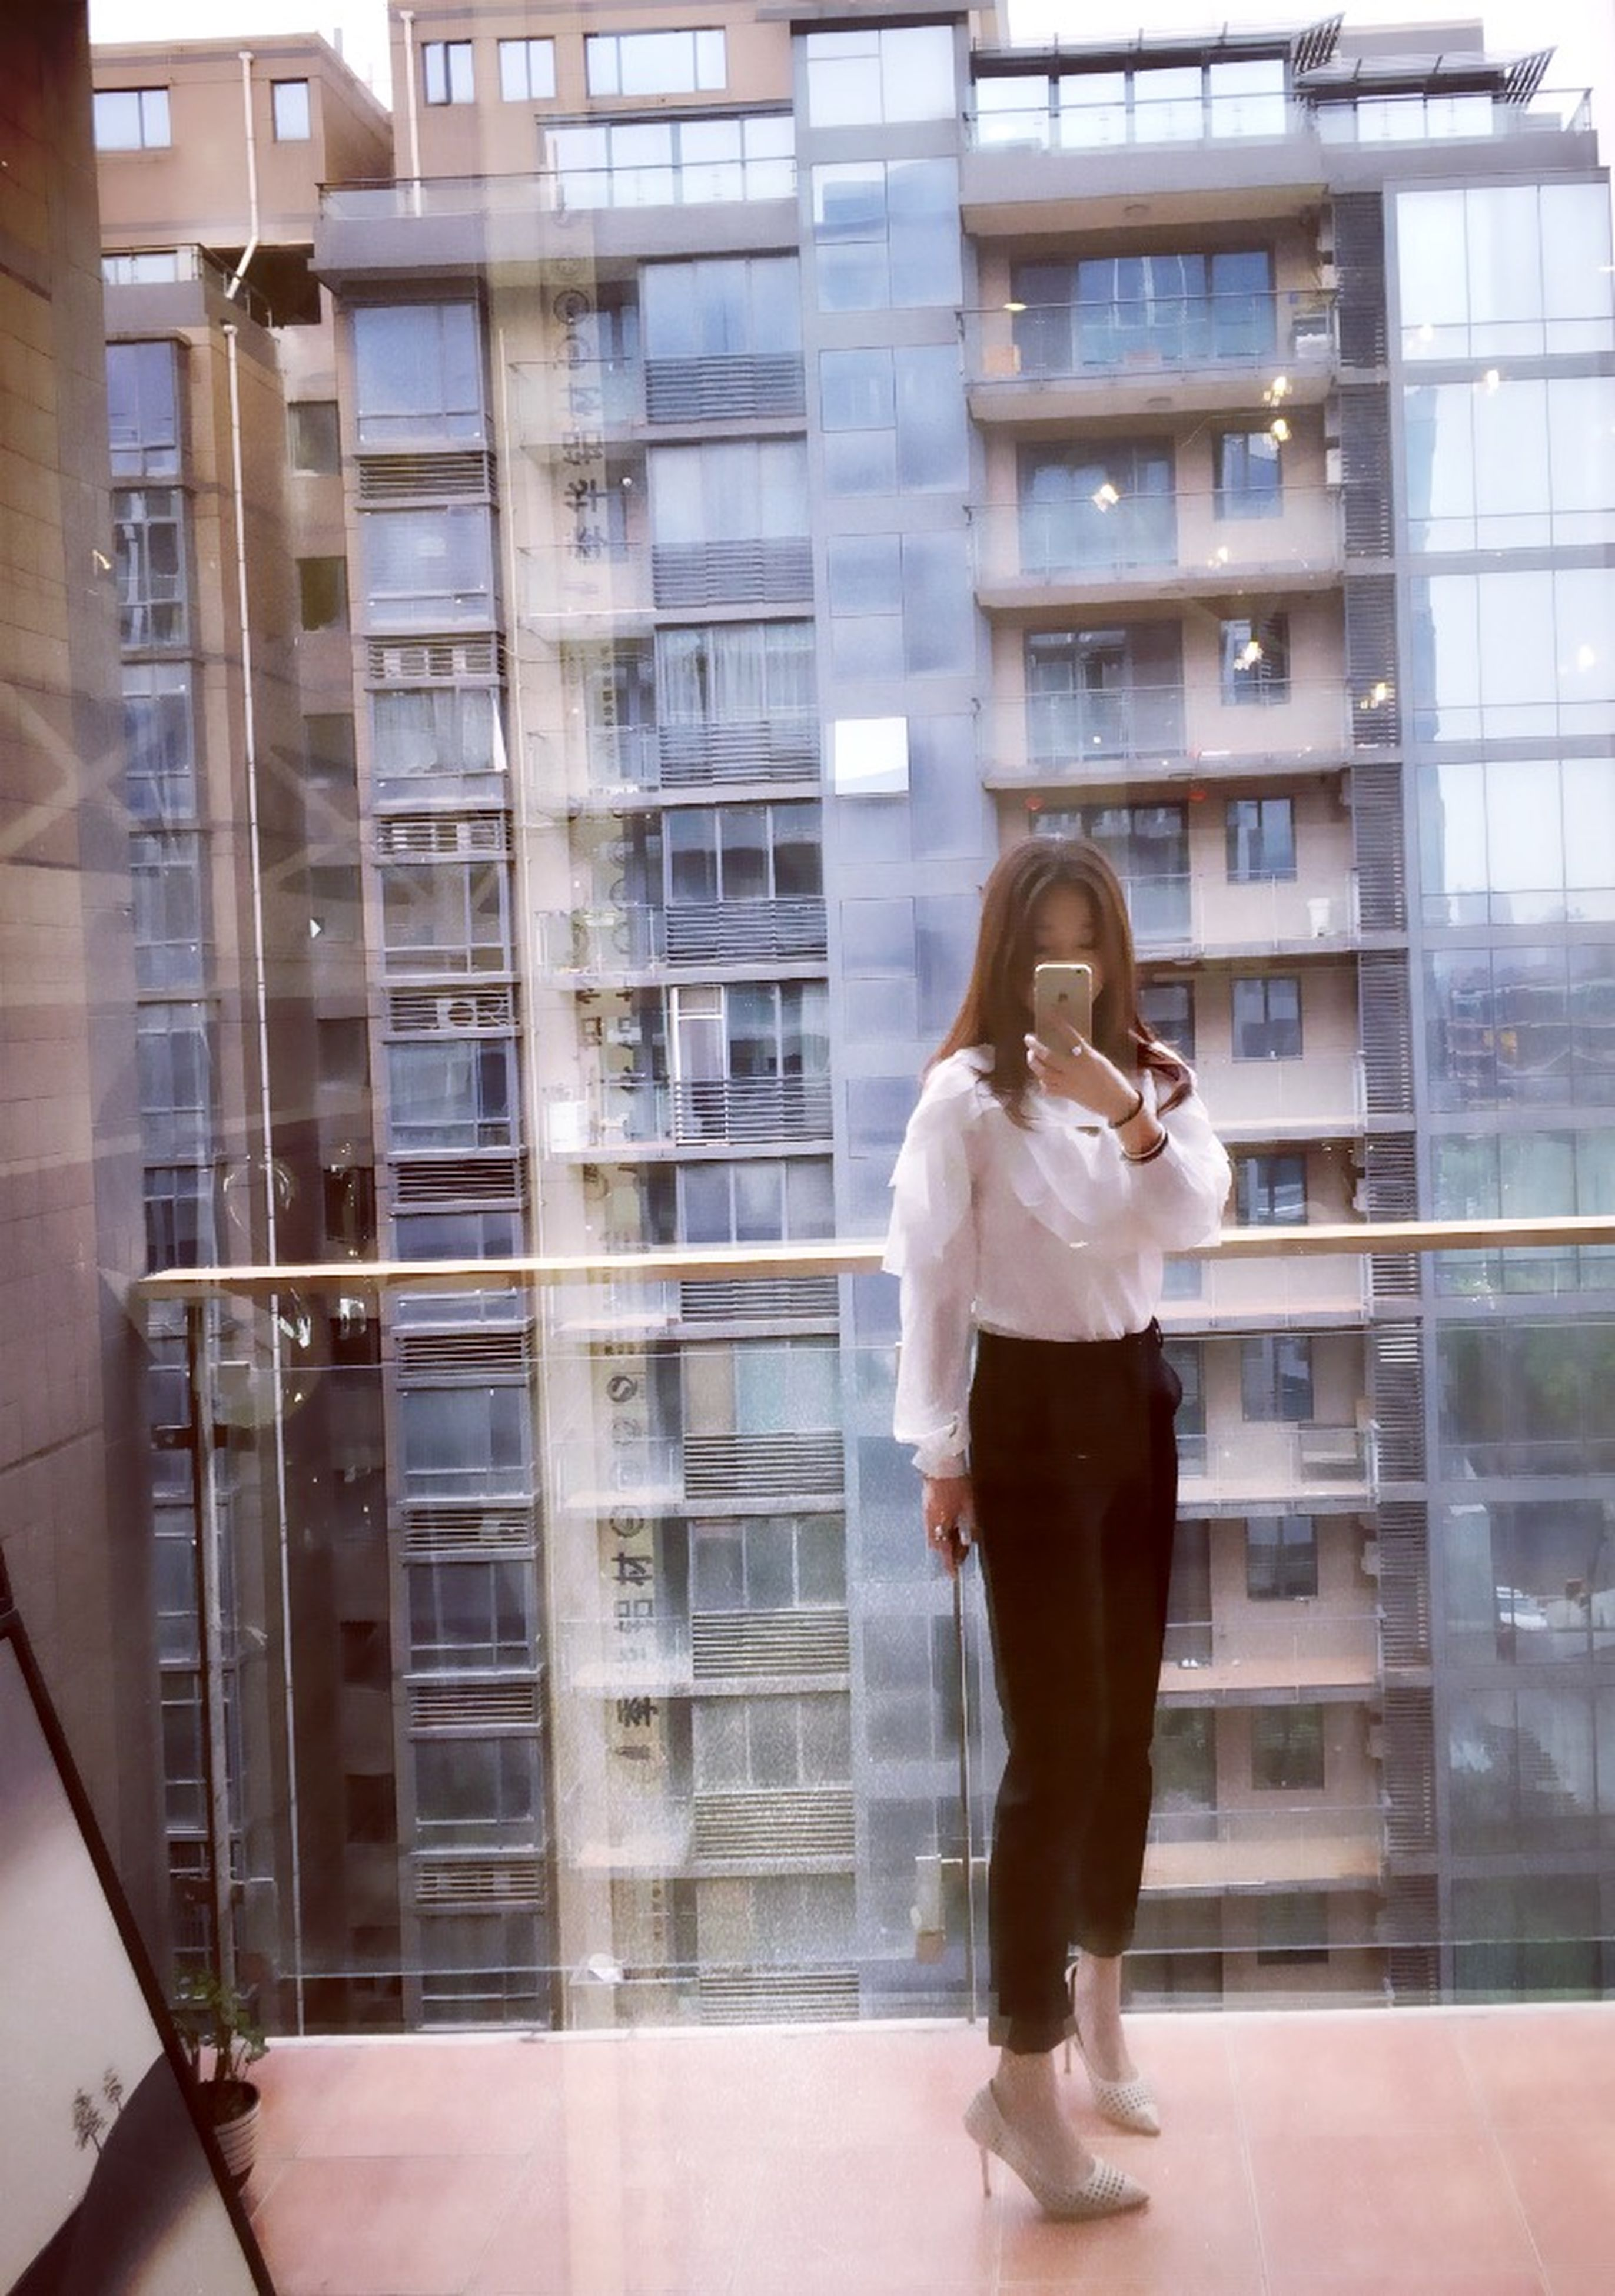 full length, architecture, built structure, building exterior, lifestyles, standing, casual clothing, rear view, young adult, leisure activity, building, young women, walking, three quarter length, person, city, side view, window